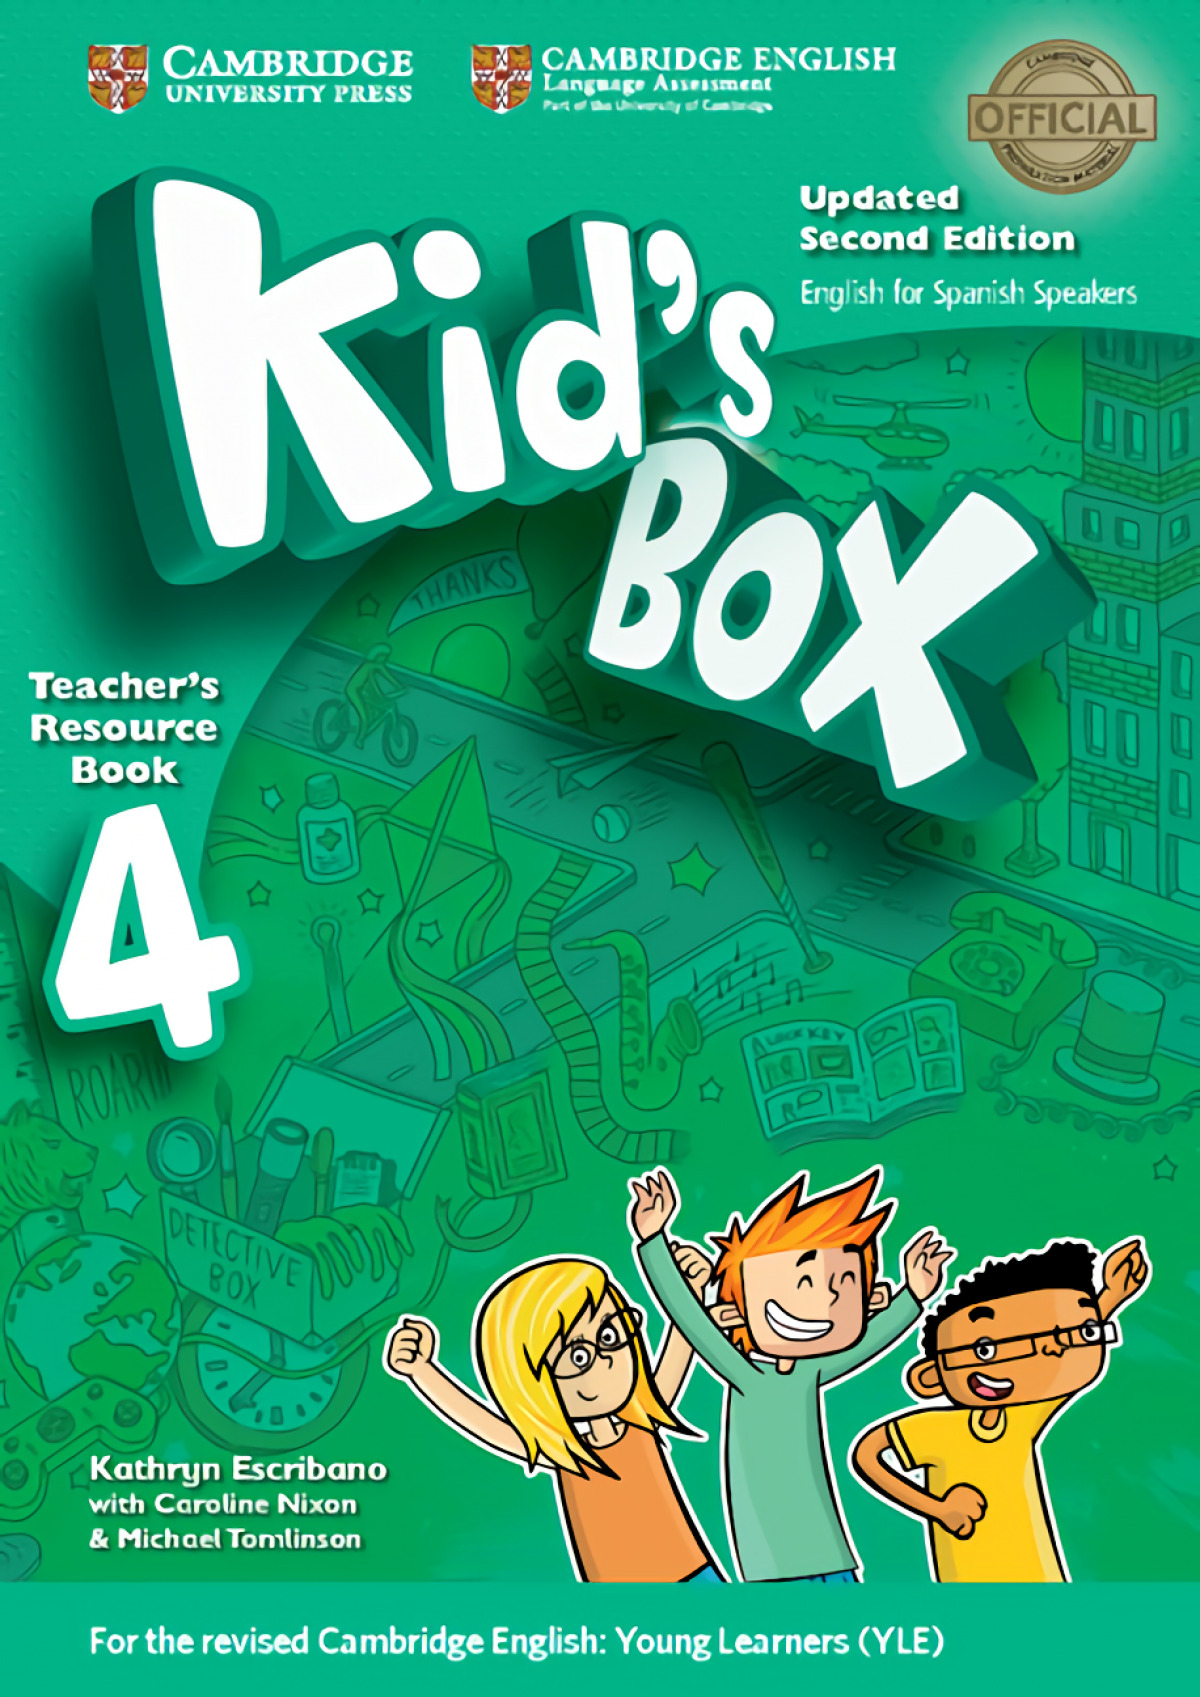 Kid's Box Level 4 Teacher's Resource Book with Audio CDs (2) Updated English for Spanish Speakers 2nd Edition